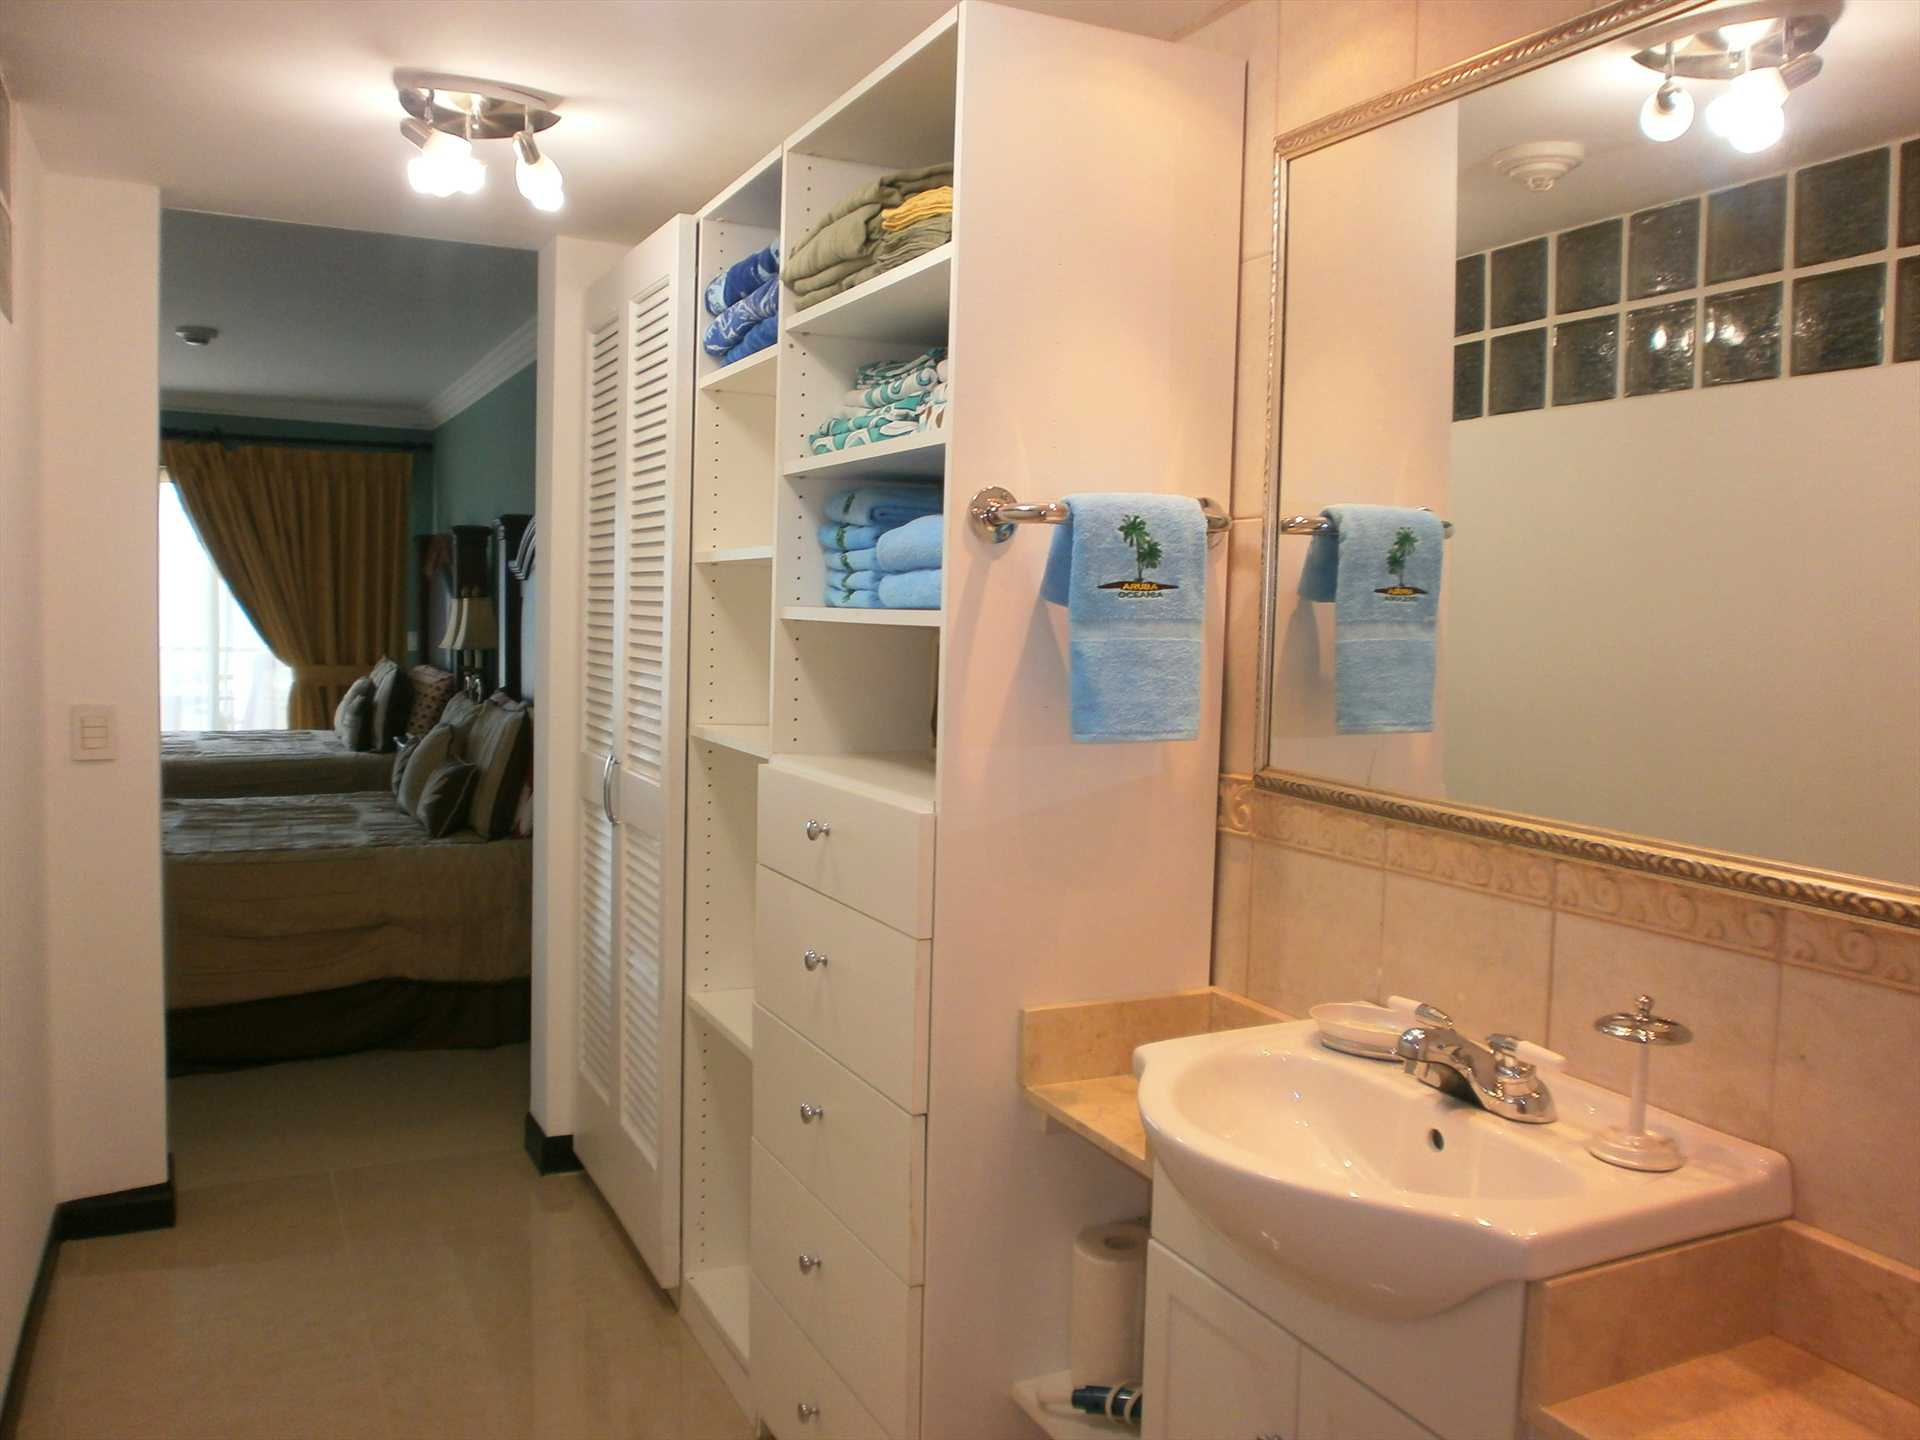 Master 'en suit' bathroom with two sinks, toilet, bidet and glass-enclosed shower.